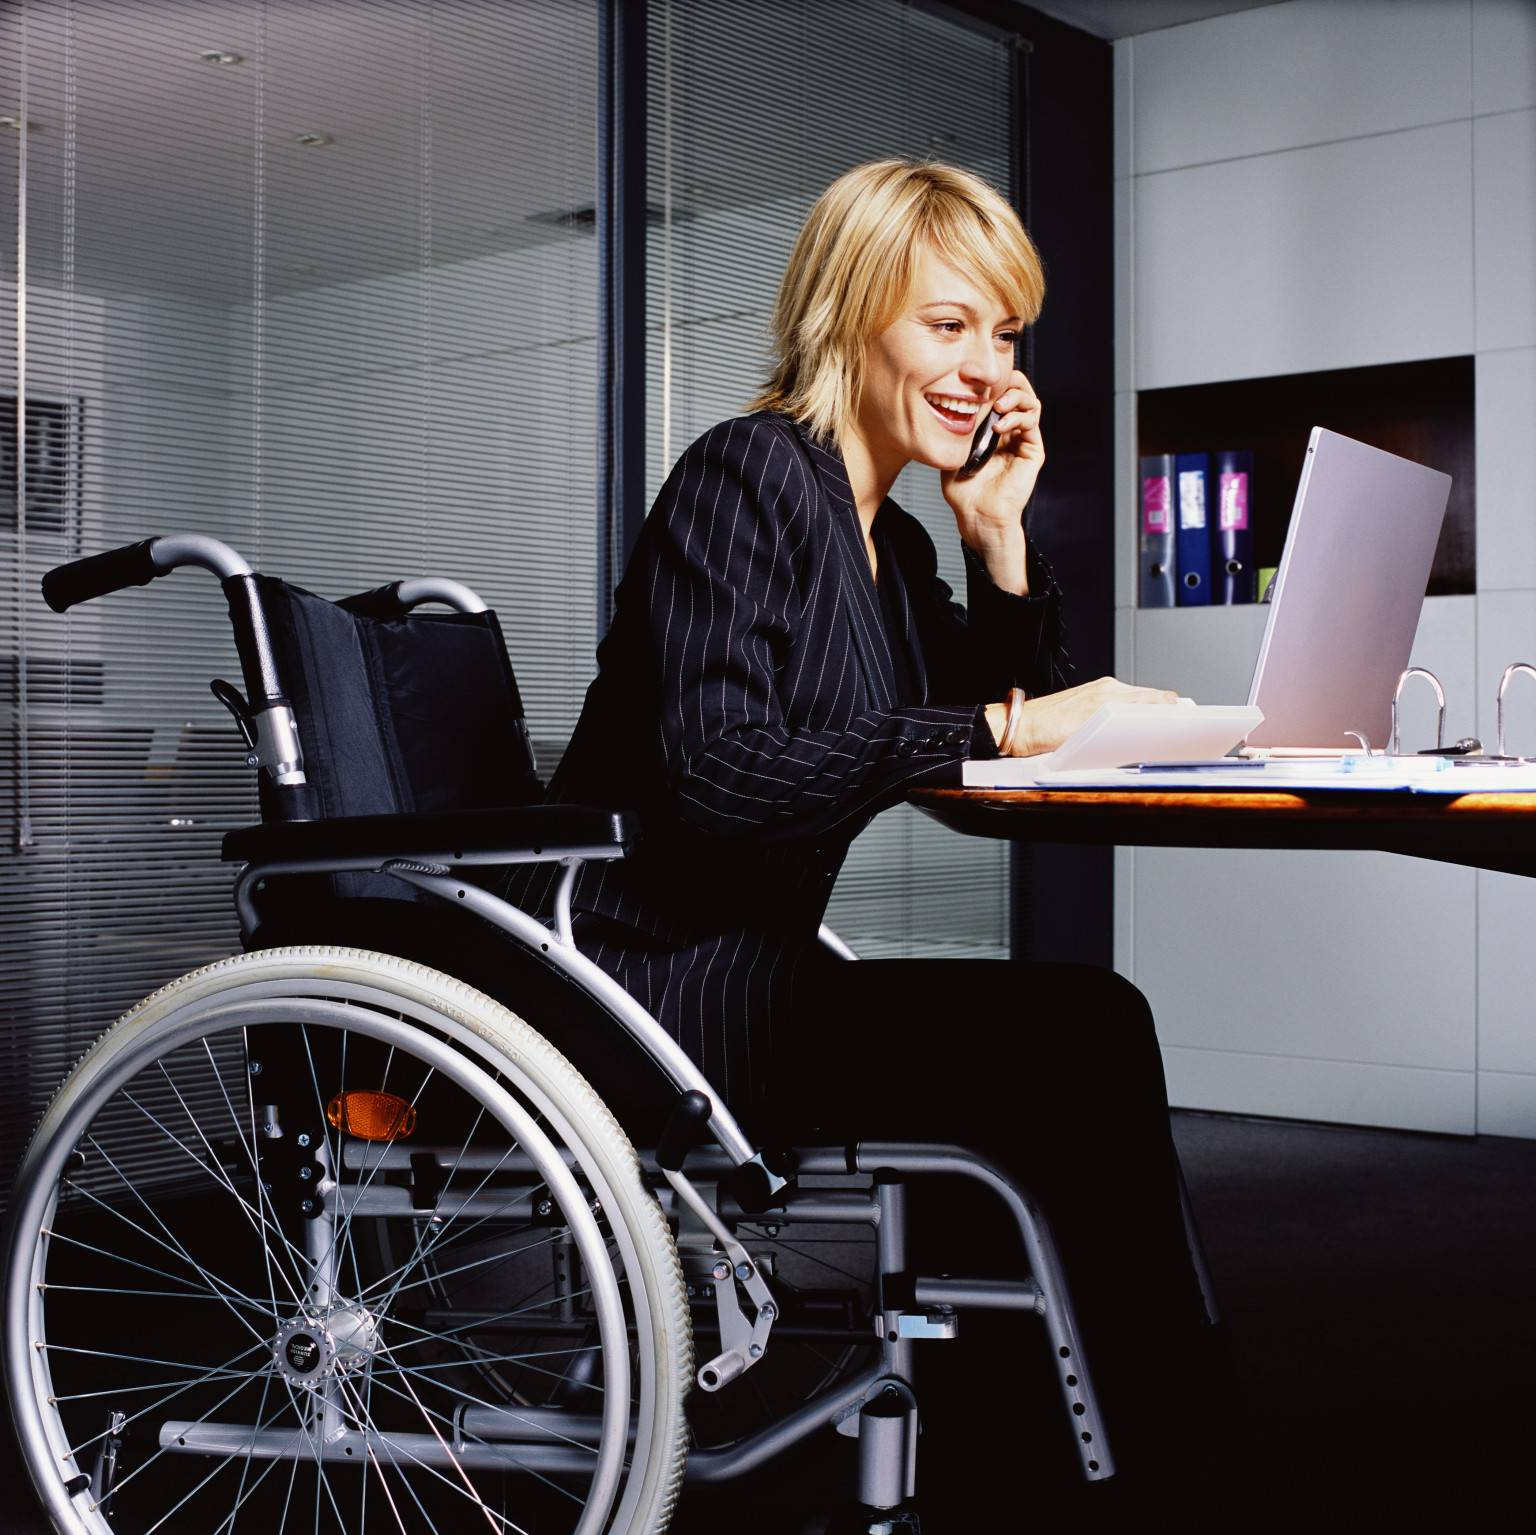 Built environment still creates barriers for people with a disability